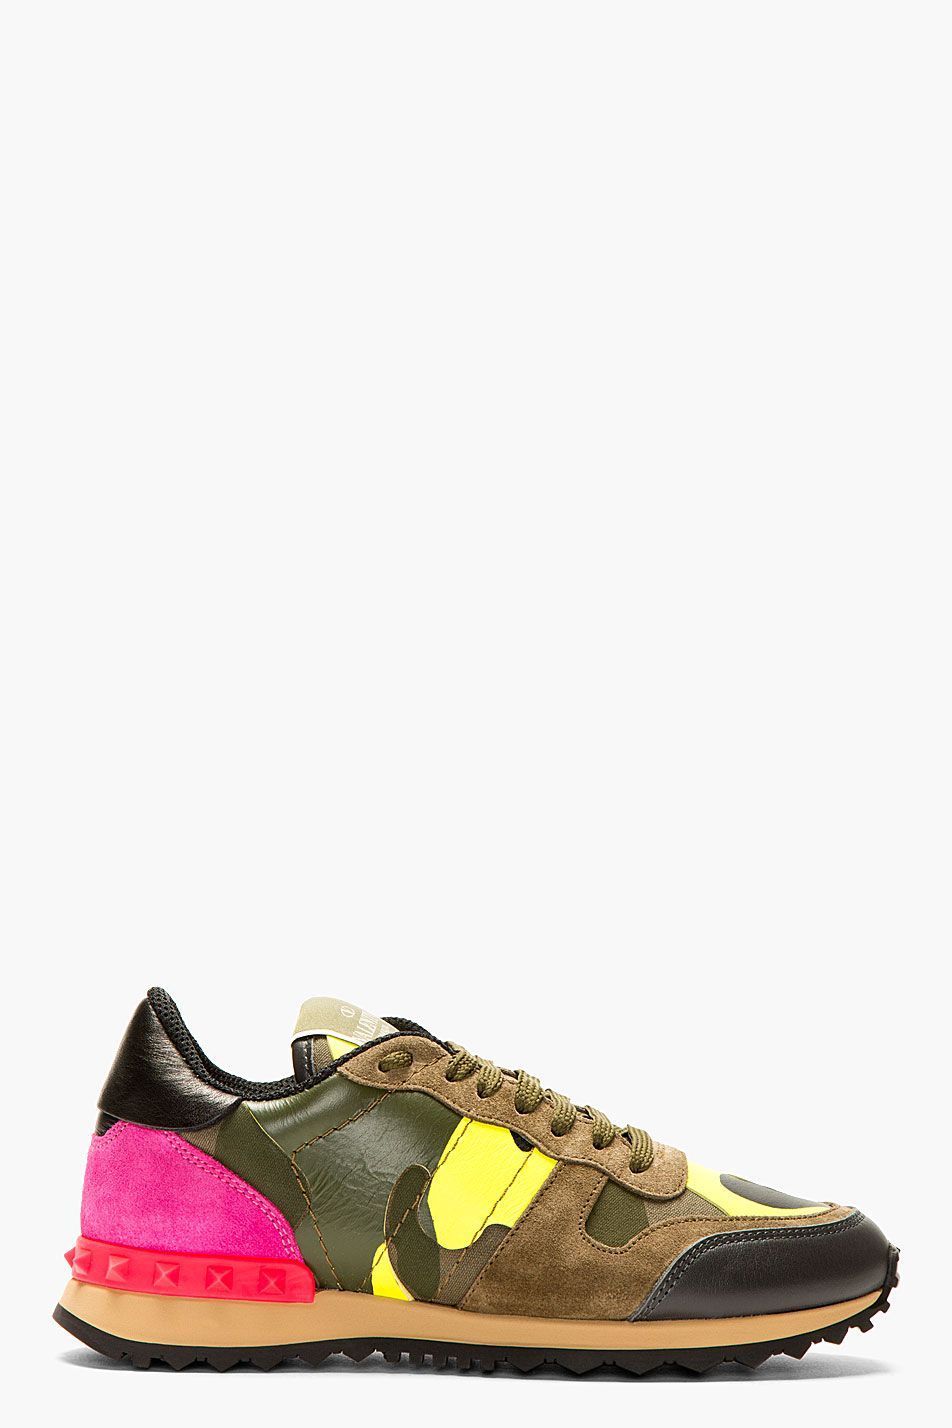 f09097d4be34 VALENTINO Fluorescent Pink   Yellow Camo Print Sneakers